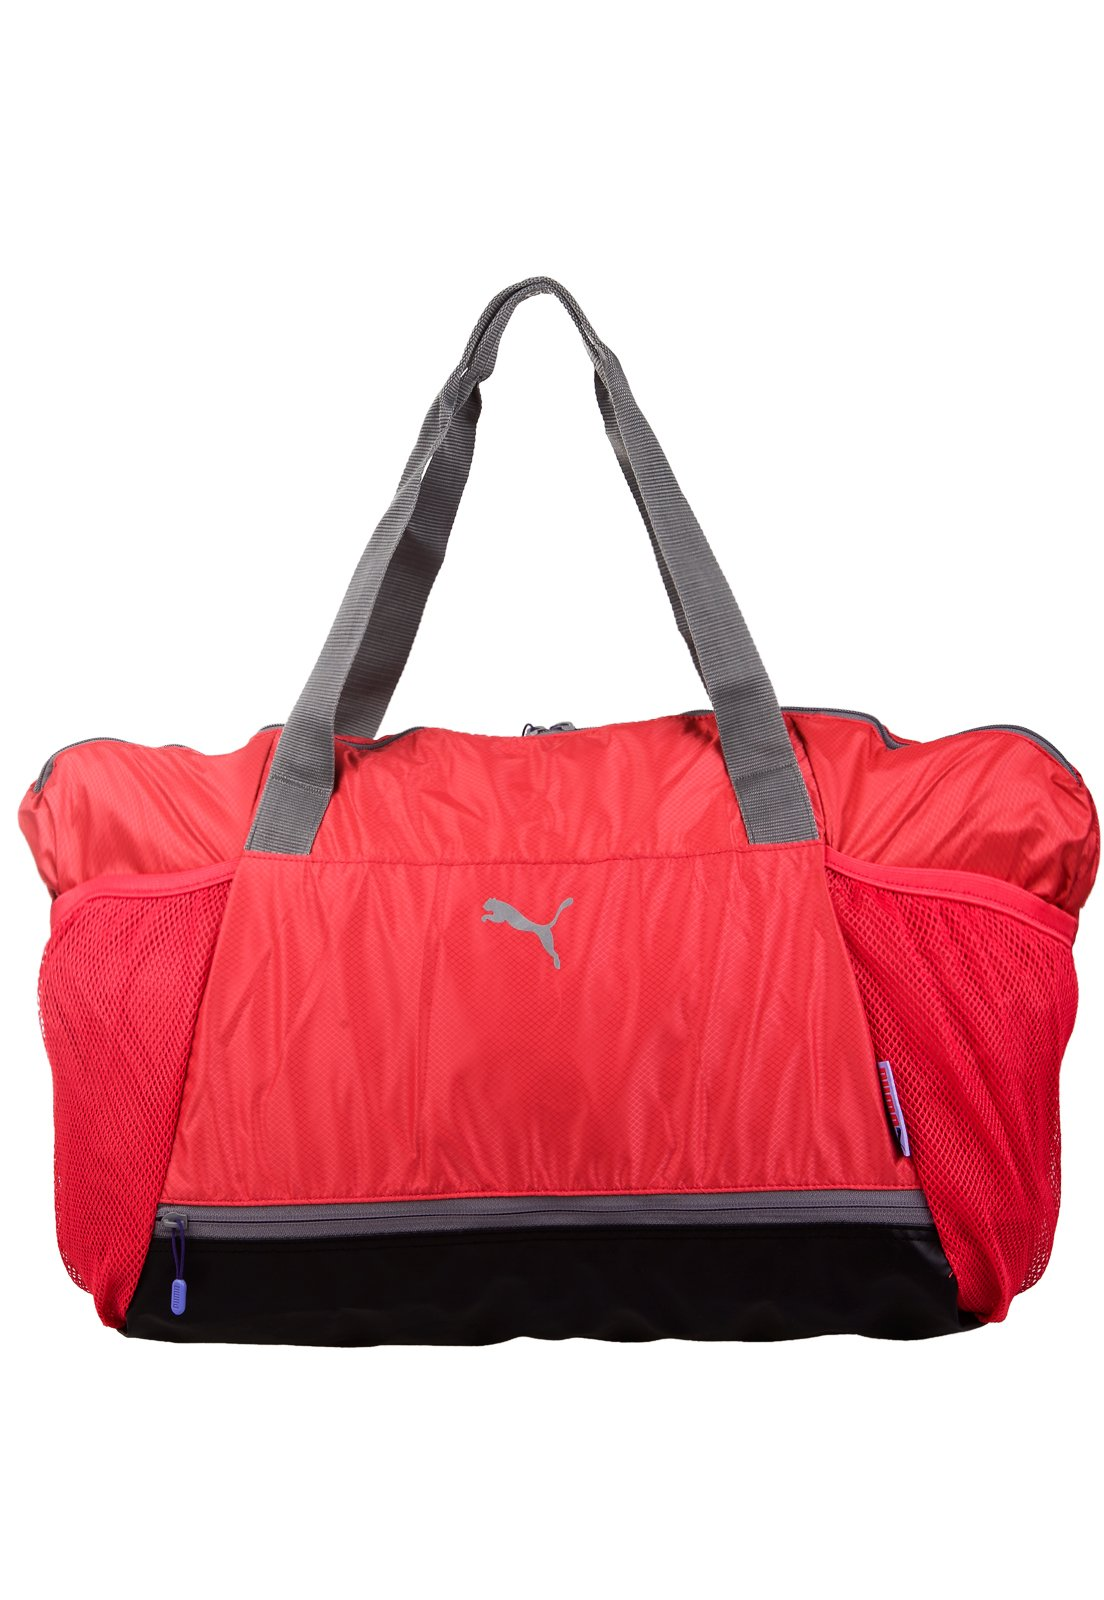 ... deporte puma fit at workout bolsa de bolso puma fit at workout 9722c8d93e79d